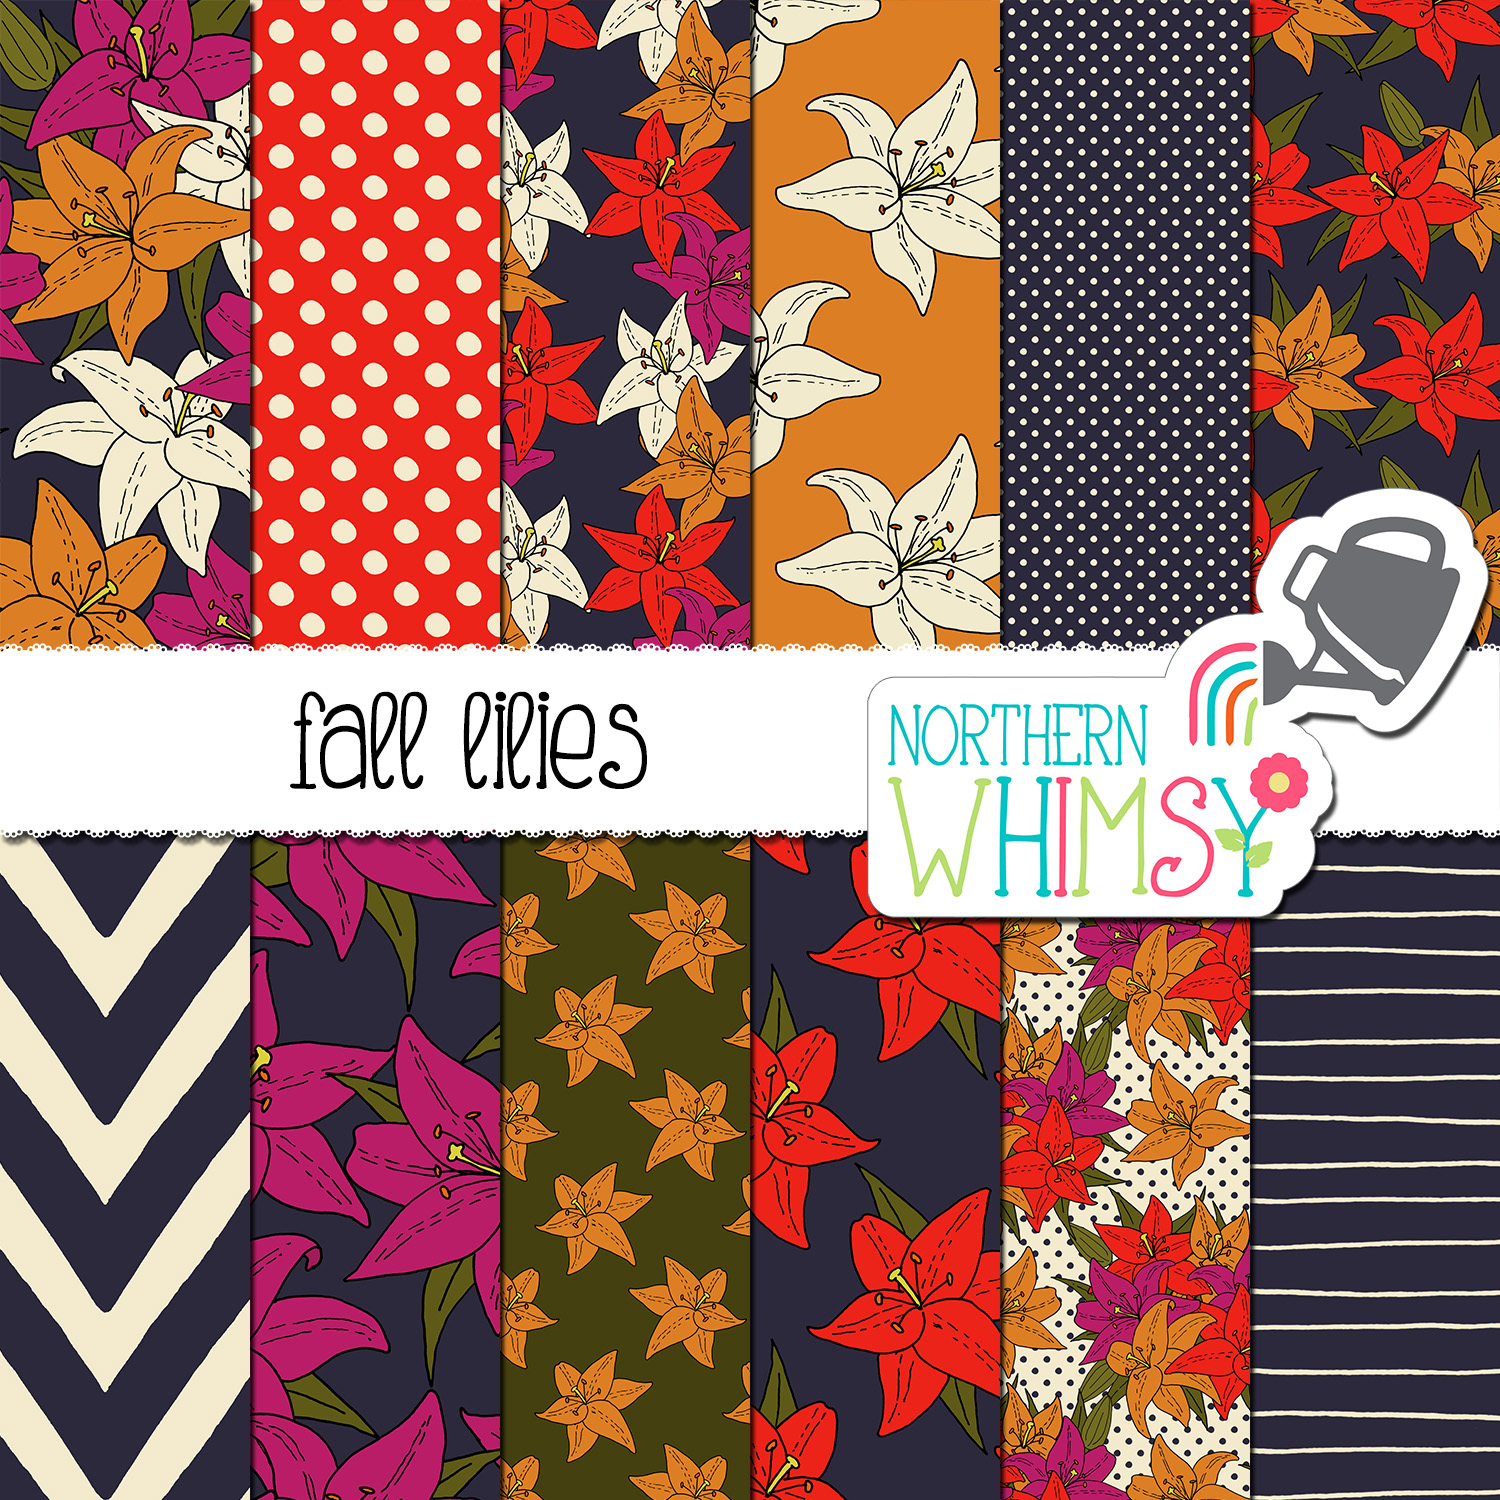 Fall Floral Digital Paper Lilies Northern Whimsy Design